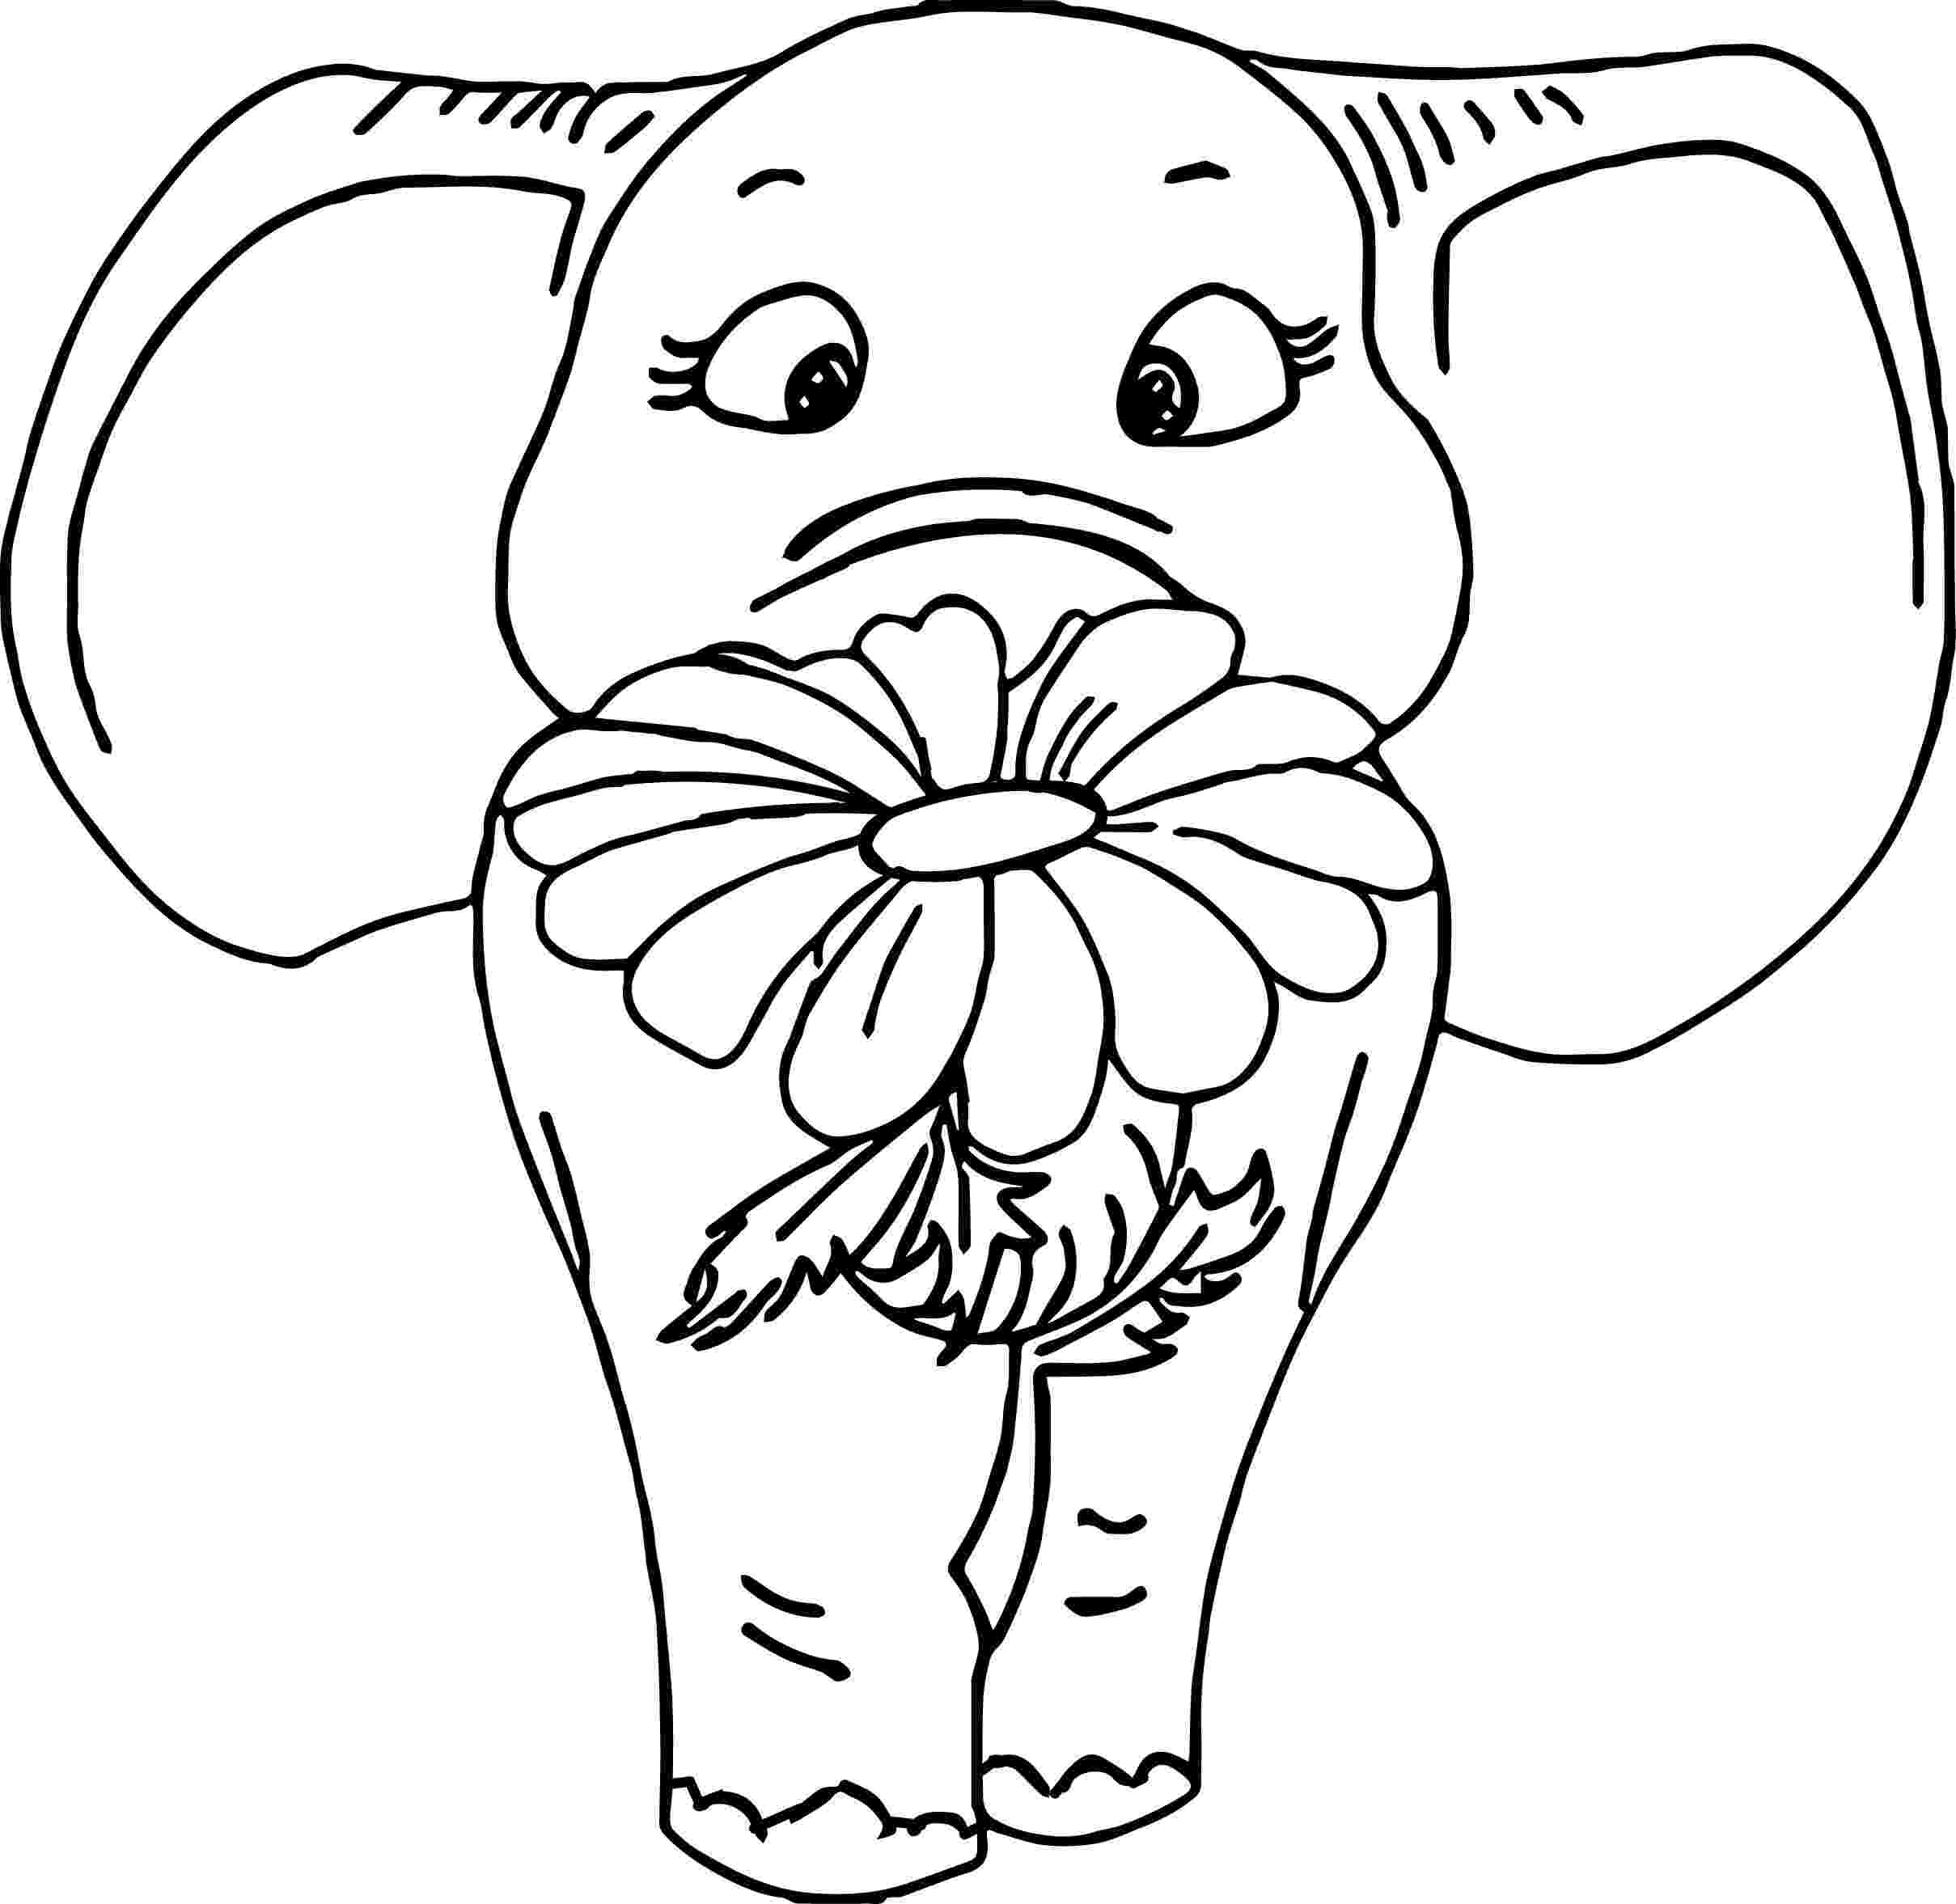 floral elephant coloring page cute baby elephant with flower coloring page free coloring floral elephant page